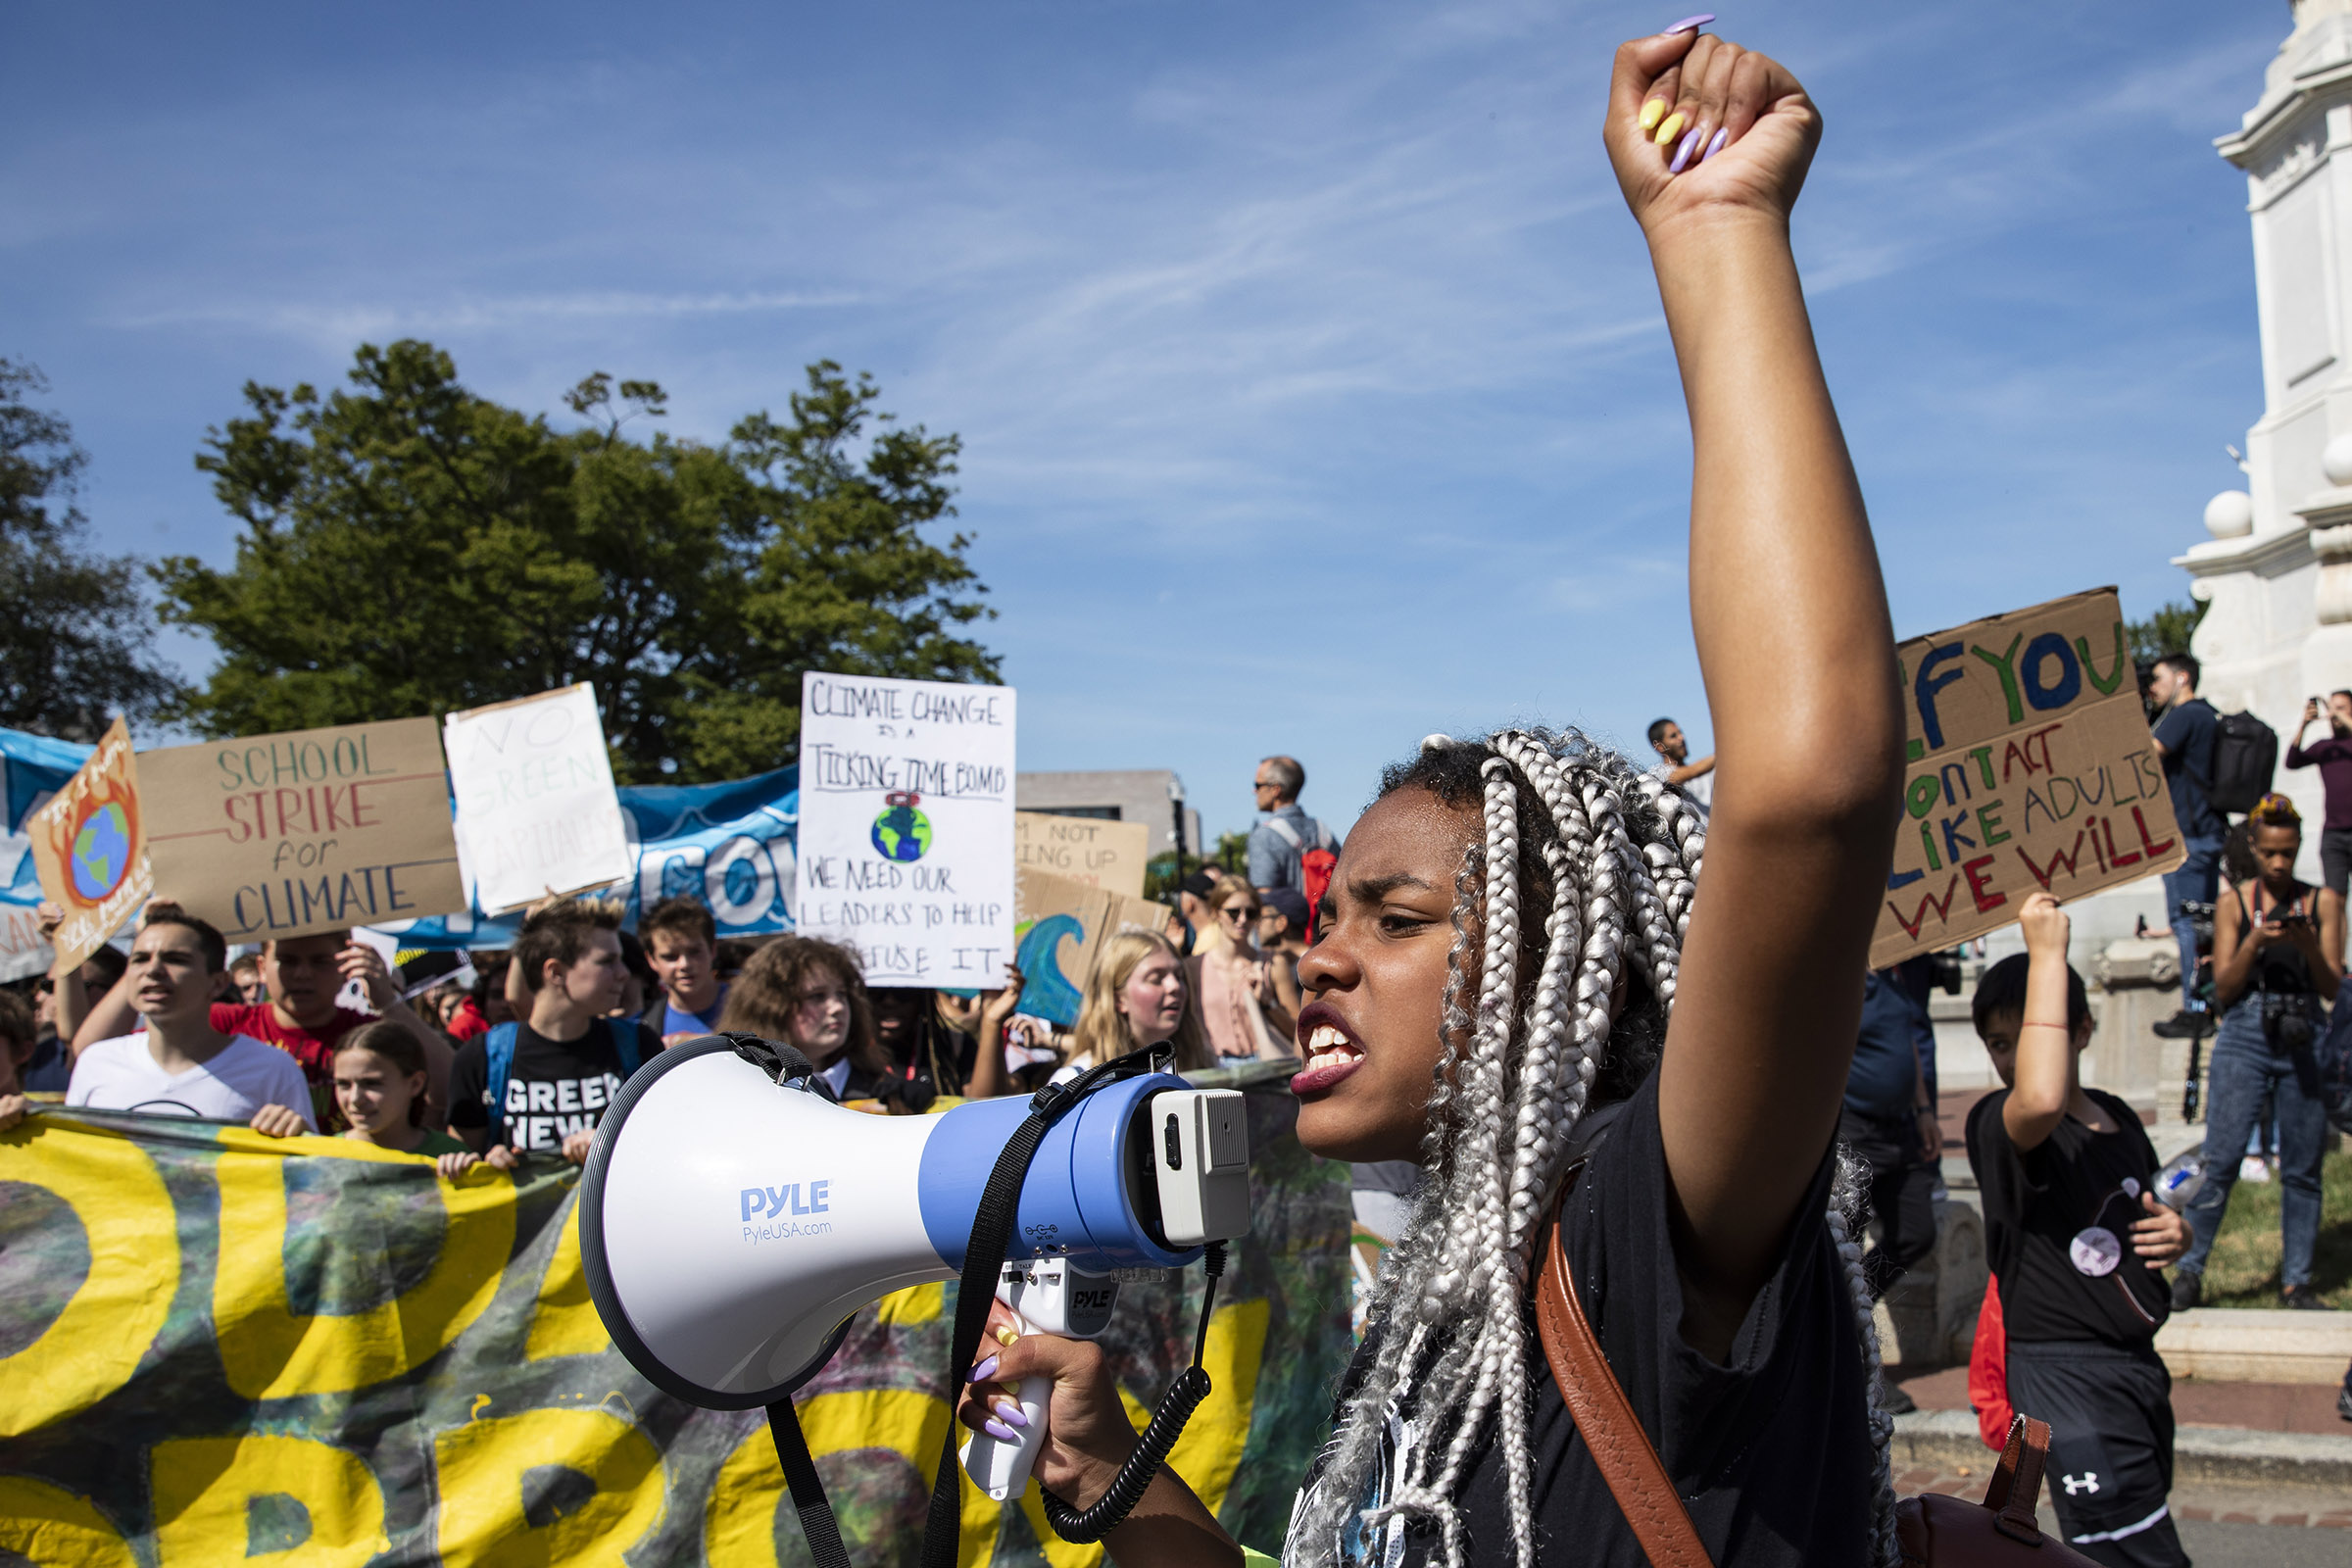 A'niya Taylor, 16, from Baltimore, MD, leads other youth down Pennsylvania Avenue to the U.S. Capitol Building as part of the Global Climate Strike protests on September 20, 2019 in Washington, DC.